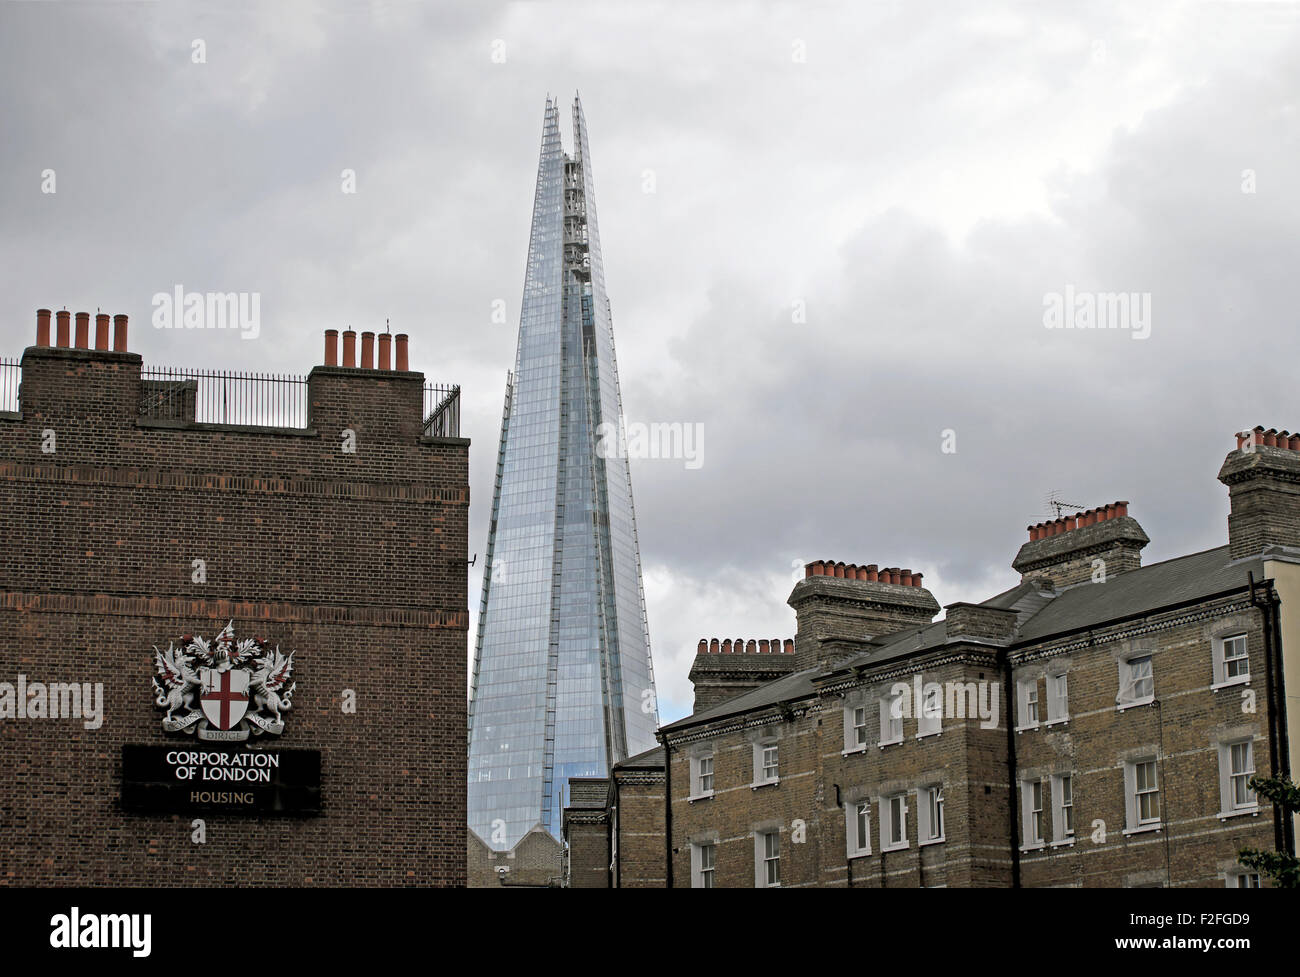 The modern Shard building viewed from a Corporation of London housing estate old new architecture in South London, - Stock Image